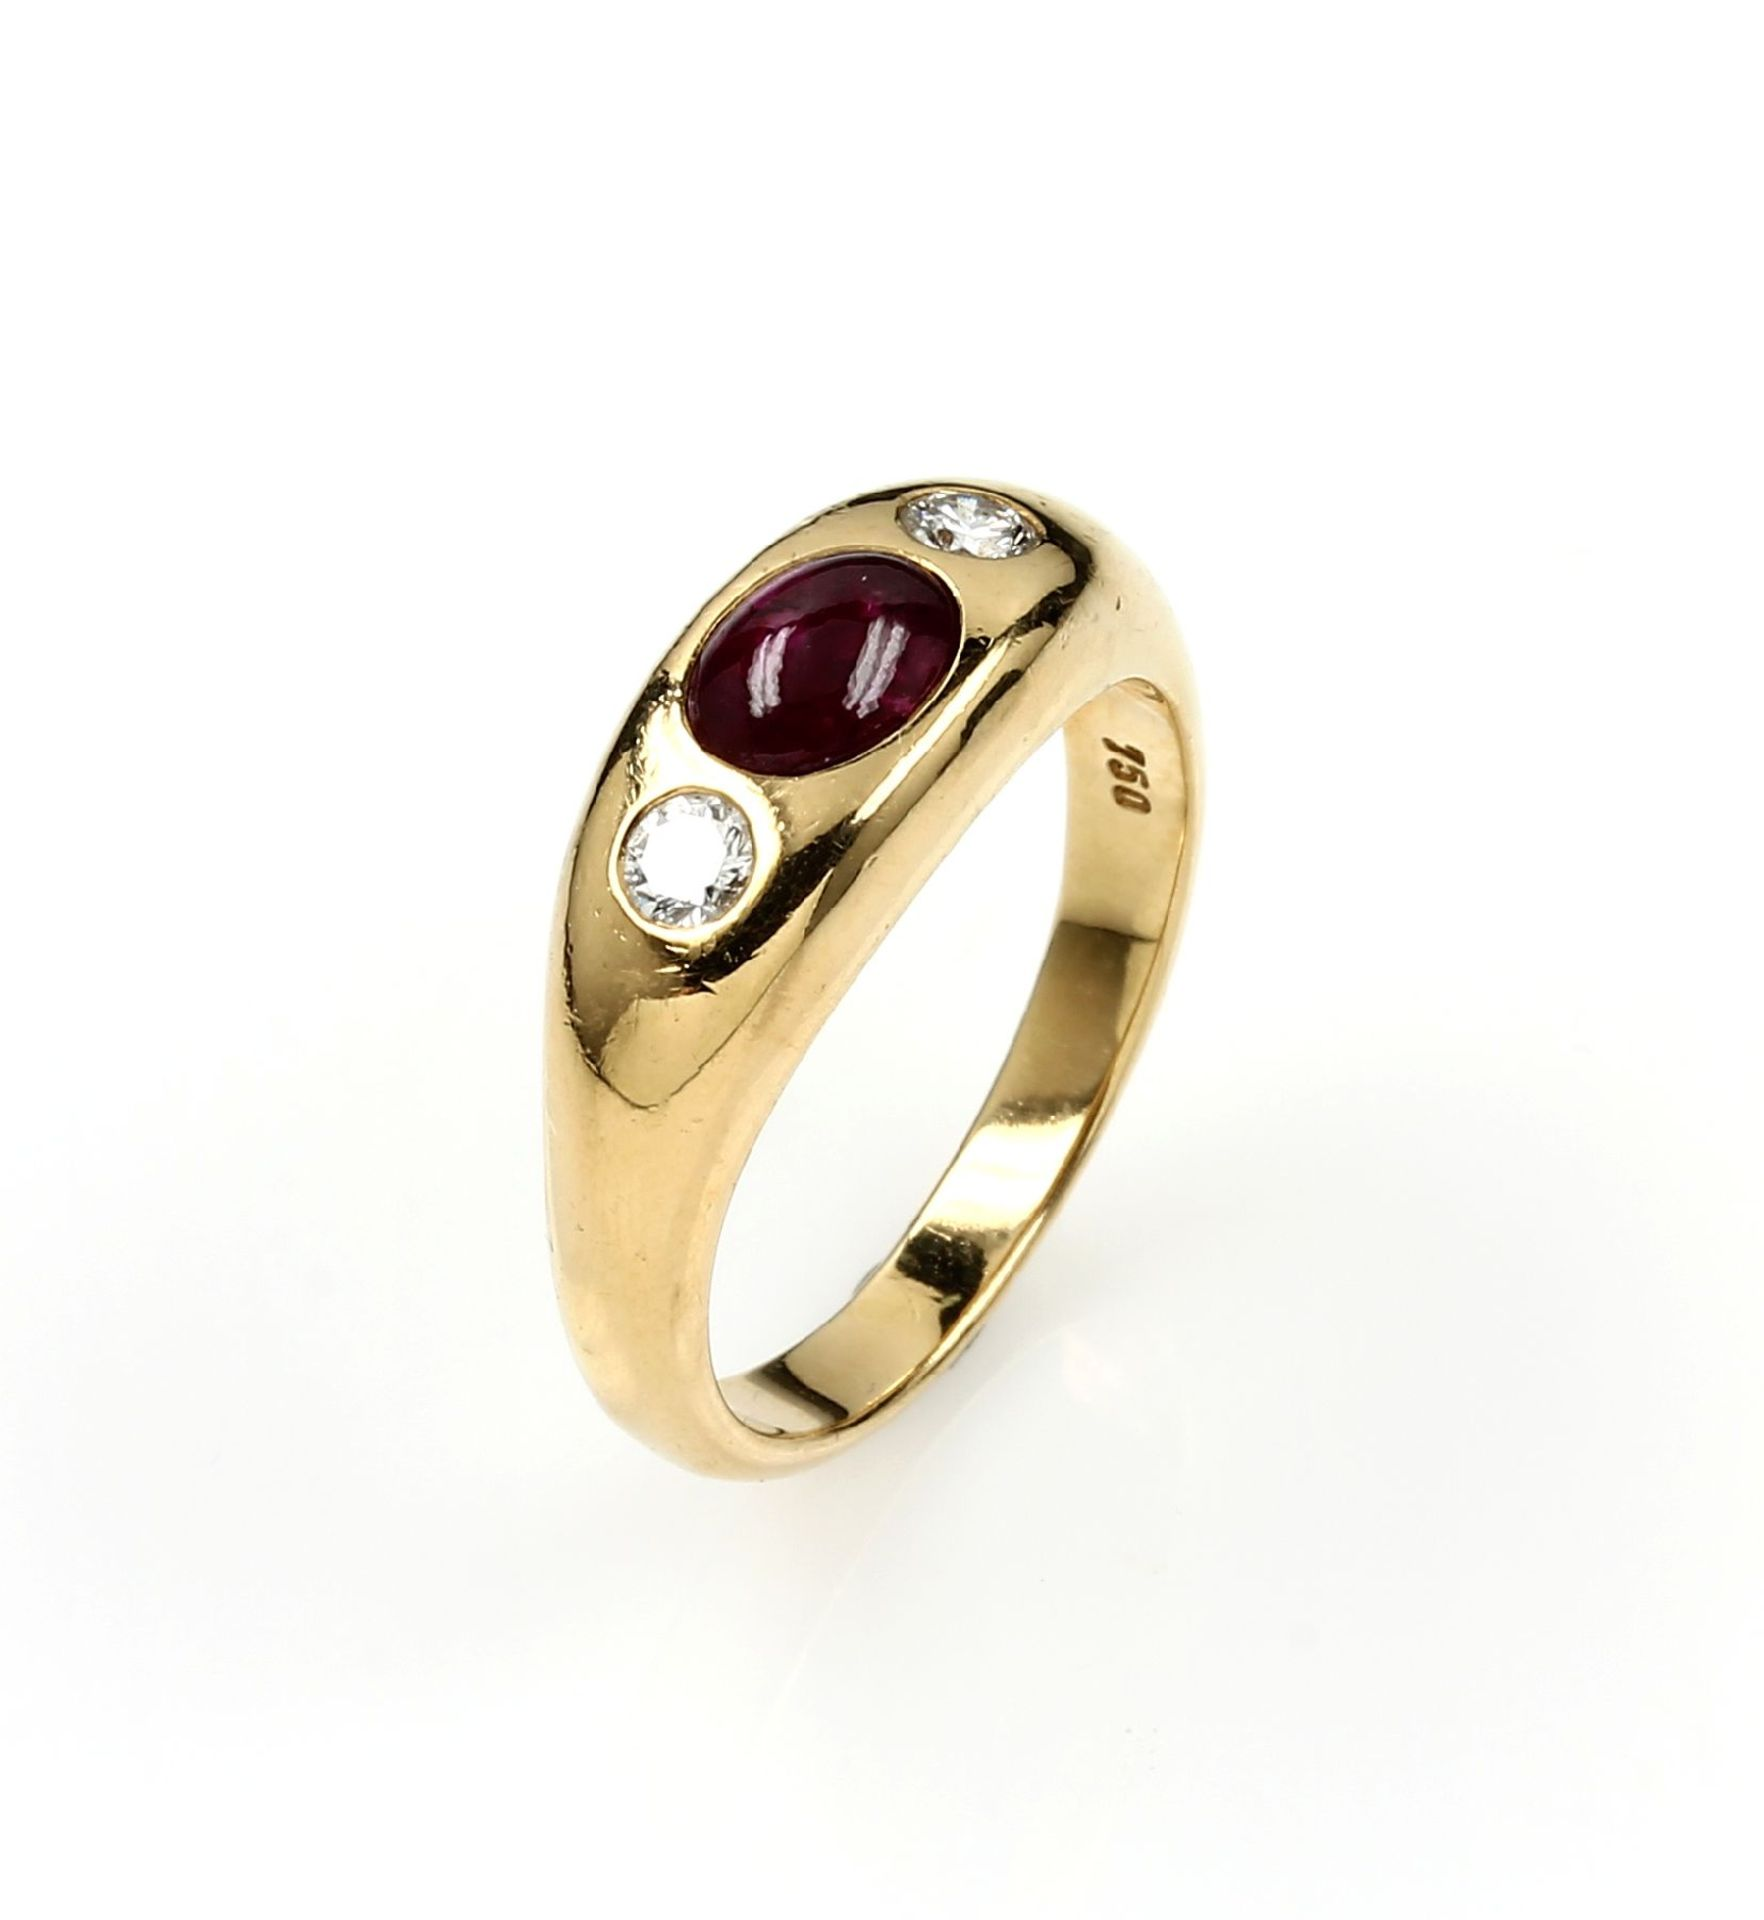 Los 61559 - 18 kt gold bandring with ruby and brilliants , YG 750/000, oval ruby cabochon approx. 0.35 ct, 2